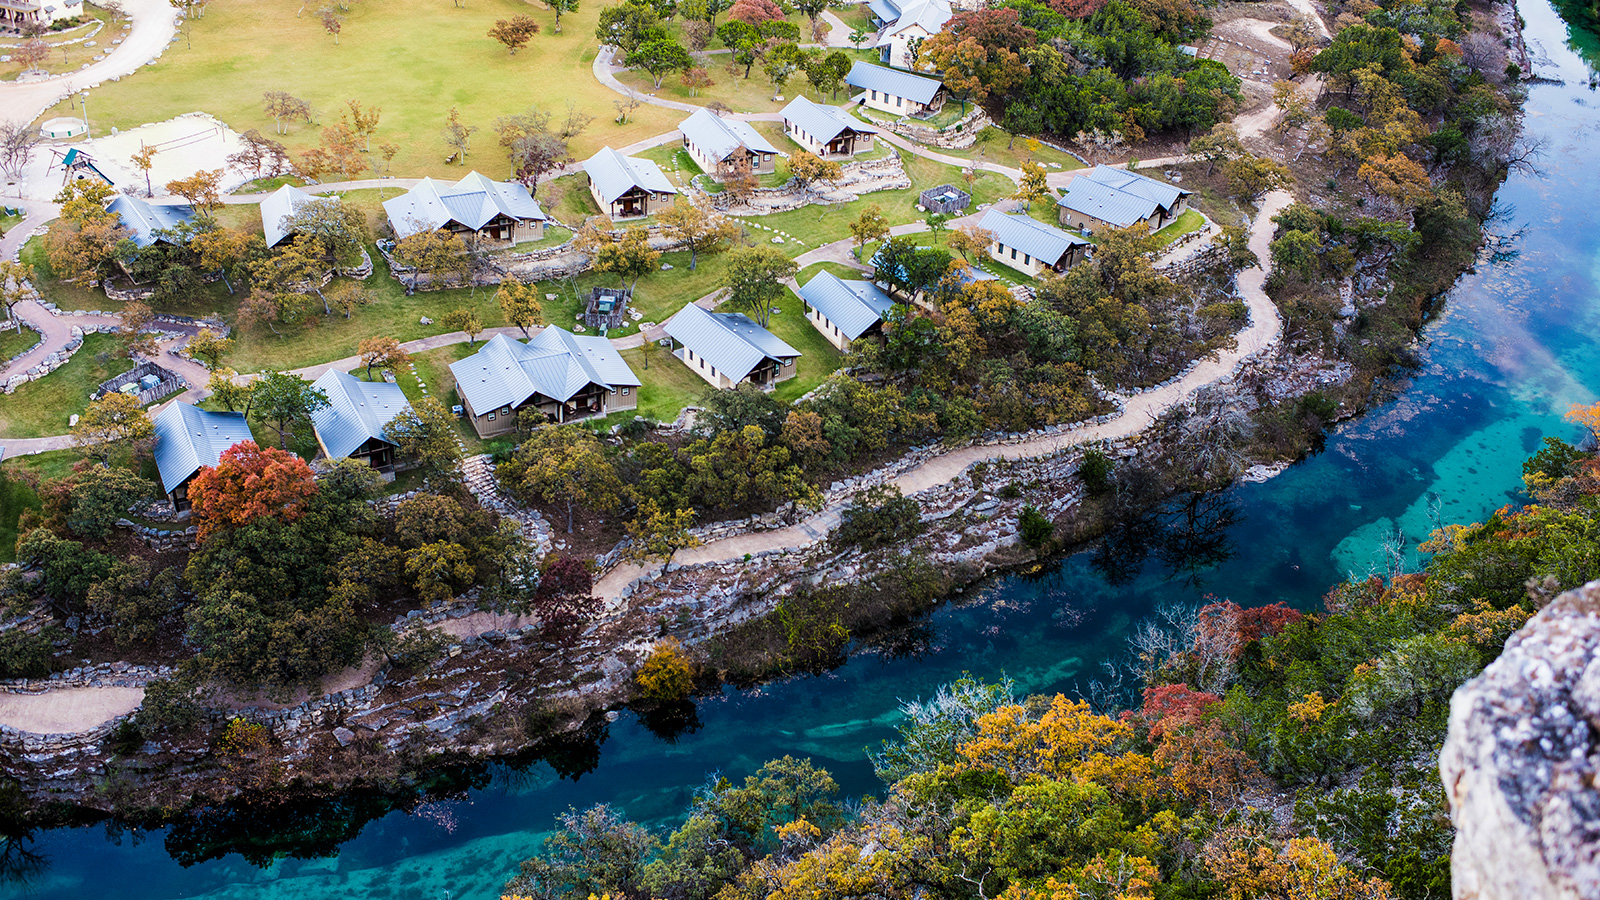 Laity Lodge Family Camp offers high-quality weeklong and weekend getaways at the headwaters of the Frio River-set in the Texas Hill Country's most spectacular canyon.  Photo / Wendi Poole